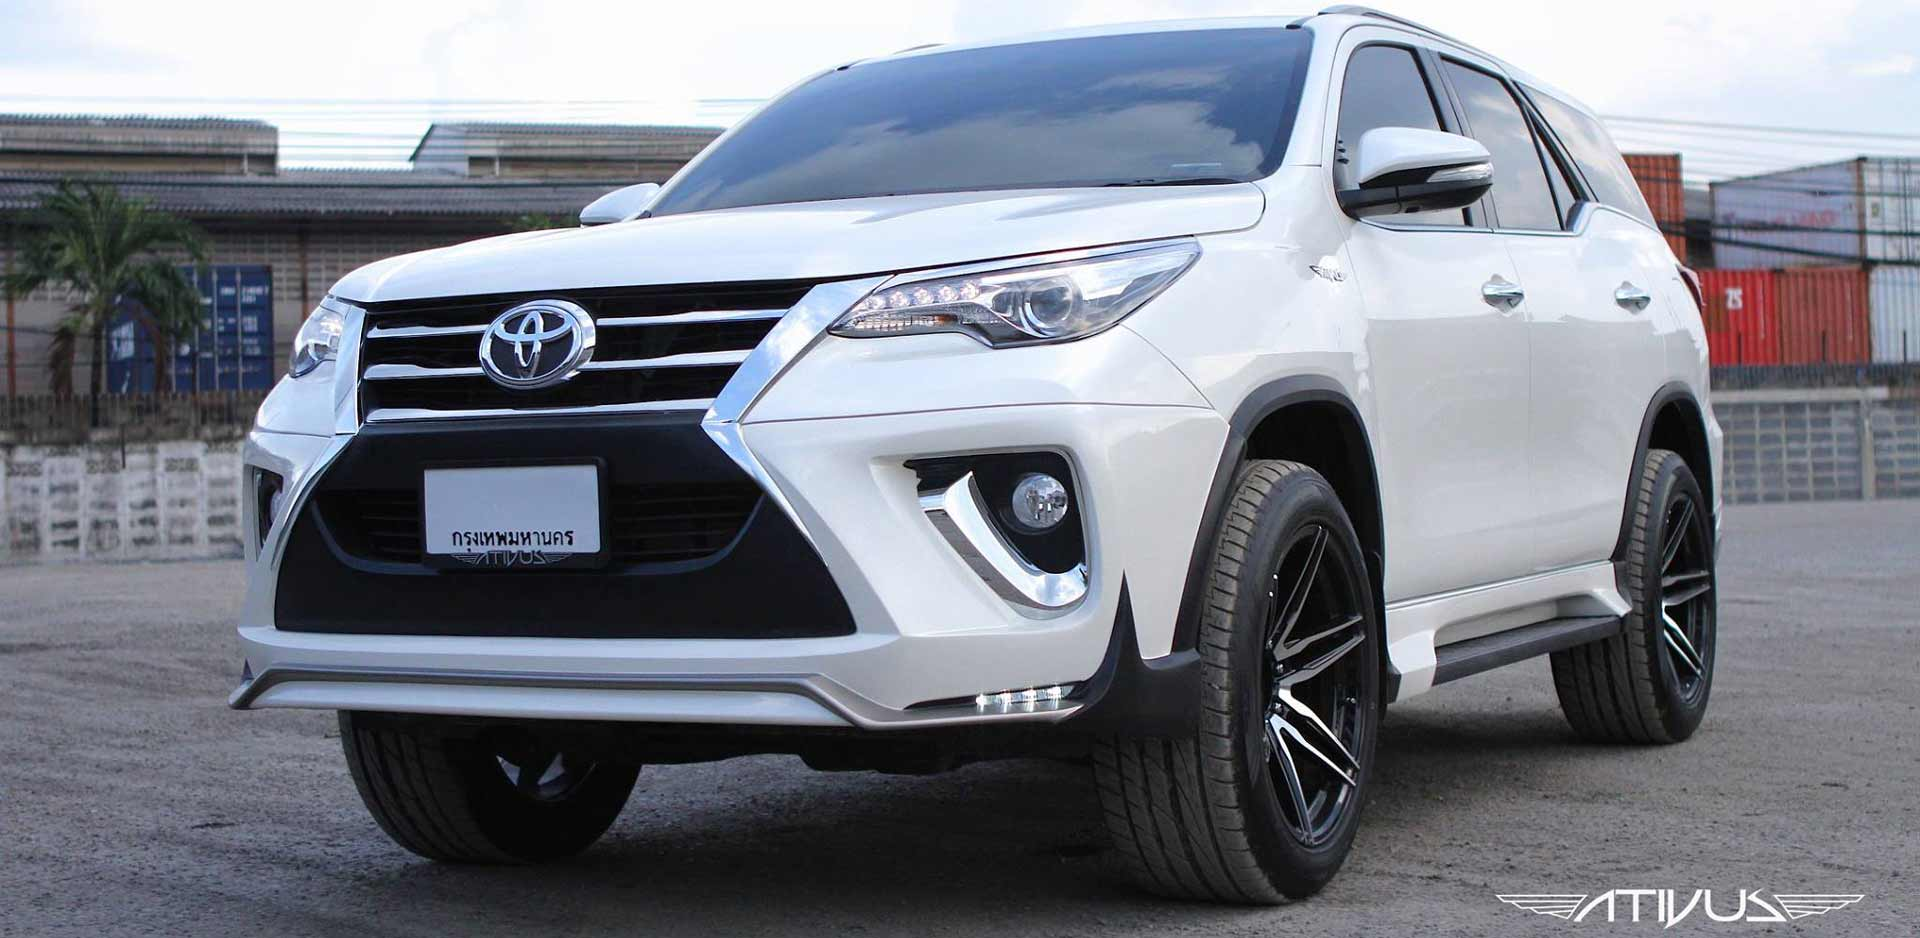 body kit fortuner ativus 2017